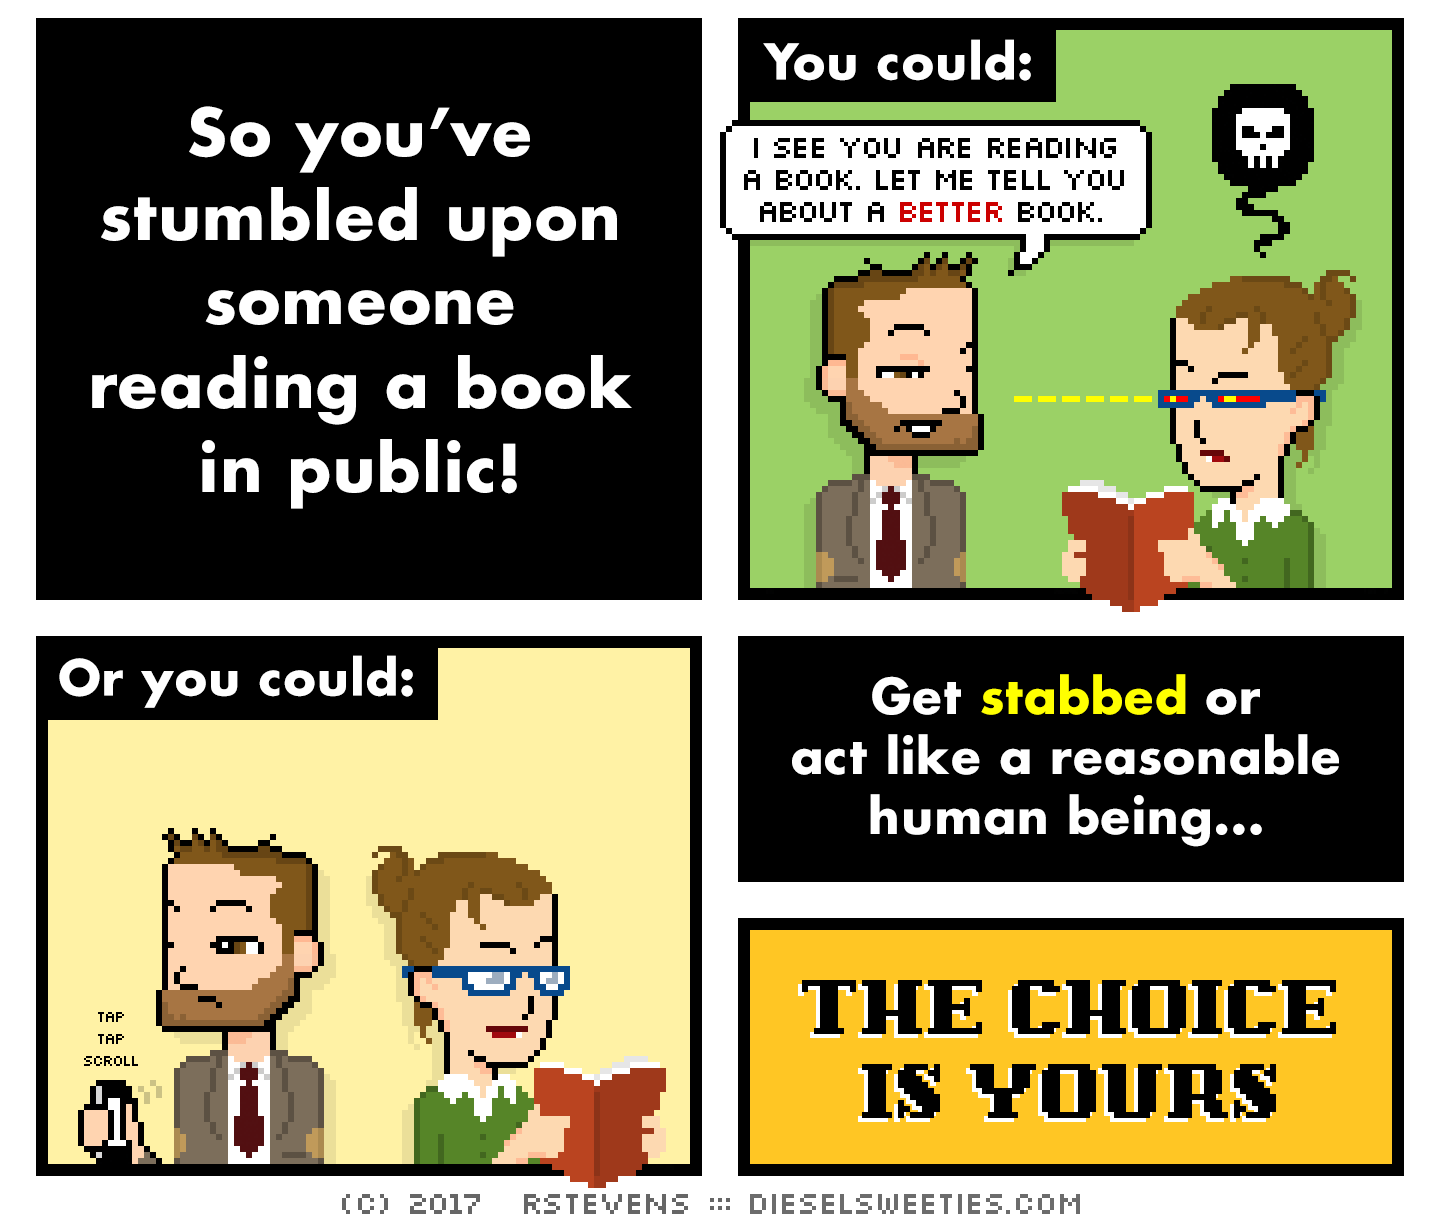 indie rock pete, library anne, holding book : So you've stumbled upon someone reading a book in public! You could: i see you are reading a book. let me tell you about a better book. Or you could: tap tap scroll : Get stabbed or act like a reasonable human being... THE CHOICE IS YOURS